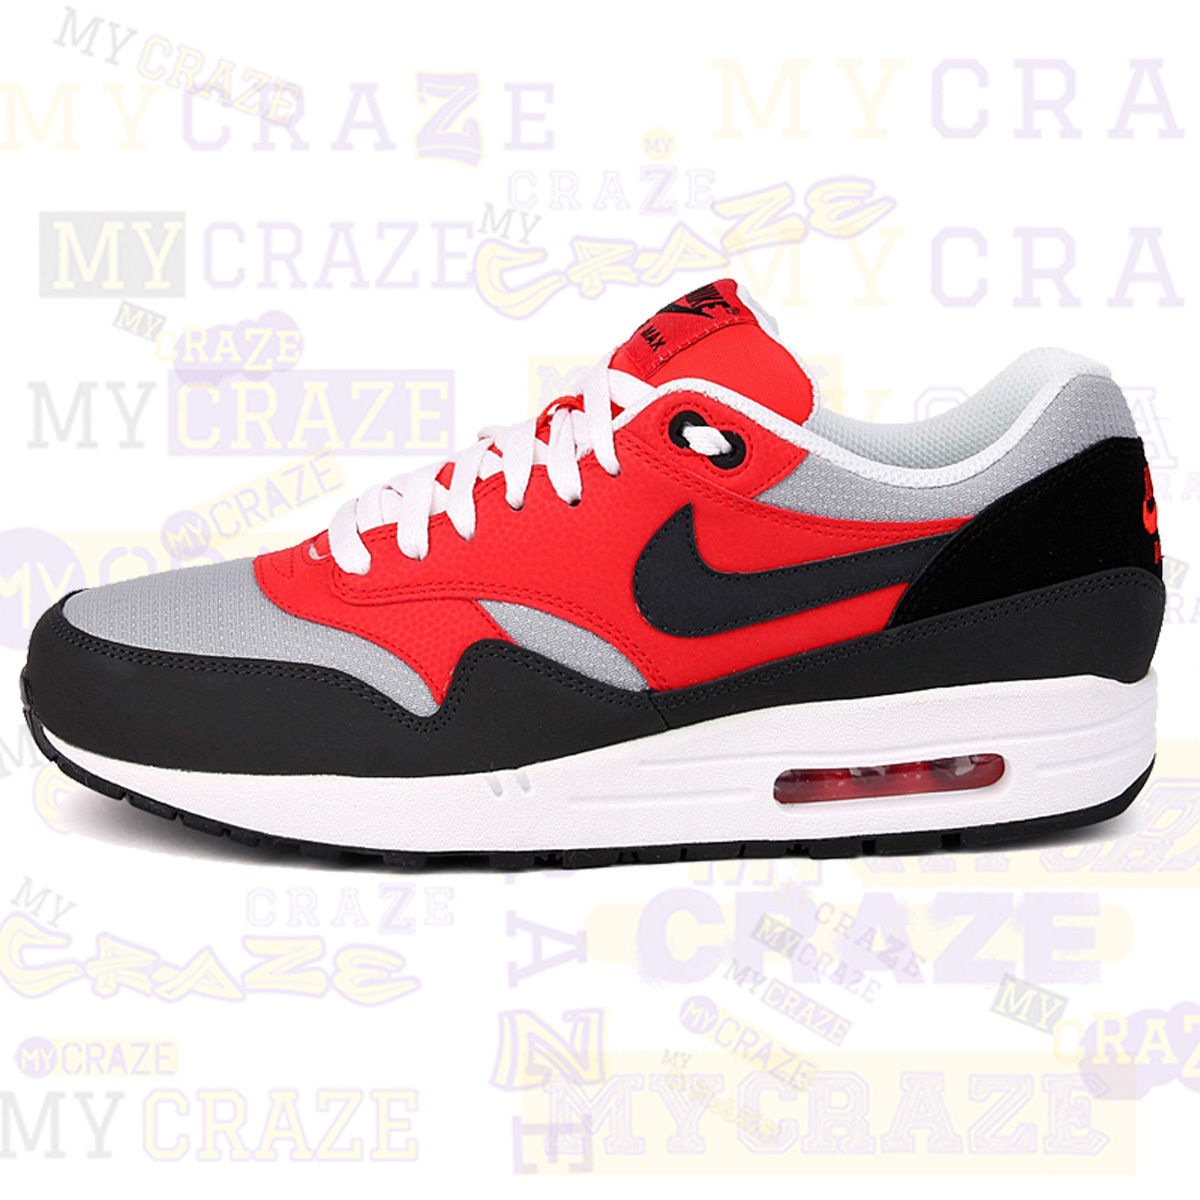 finest selection 34b5e c2829 Nike Air Max 1 Essential Red Black Mens Sneakers Shoes - MyC